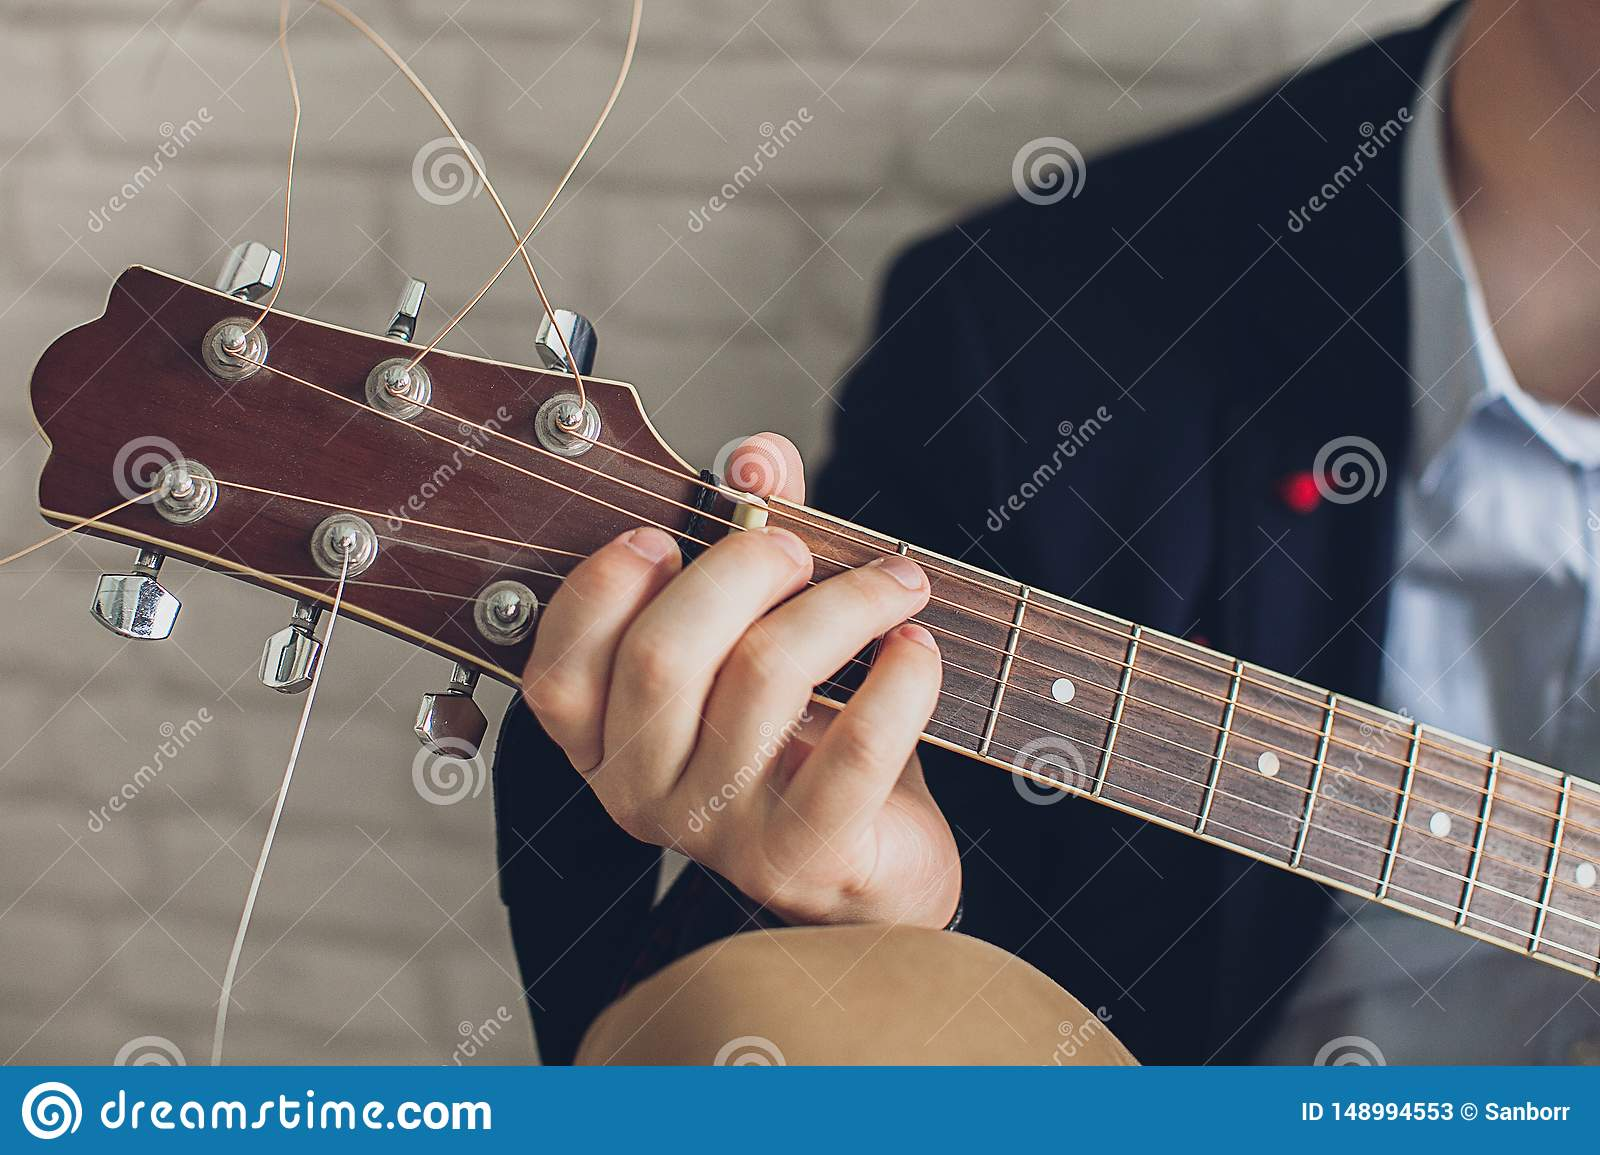 A man in a blue shirt and a dark blue jacket plays guitar against a light brick wall. Concepts Hobbies and interests in music. The